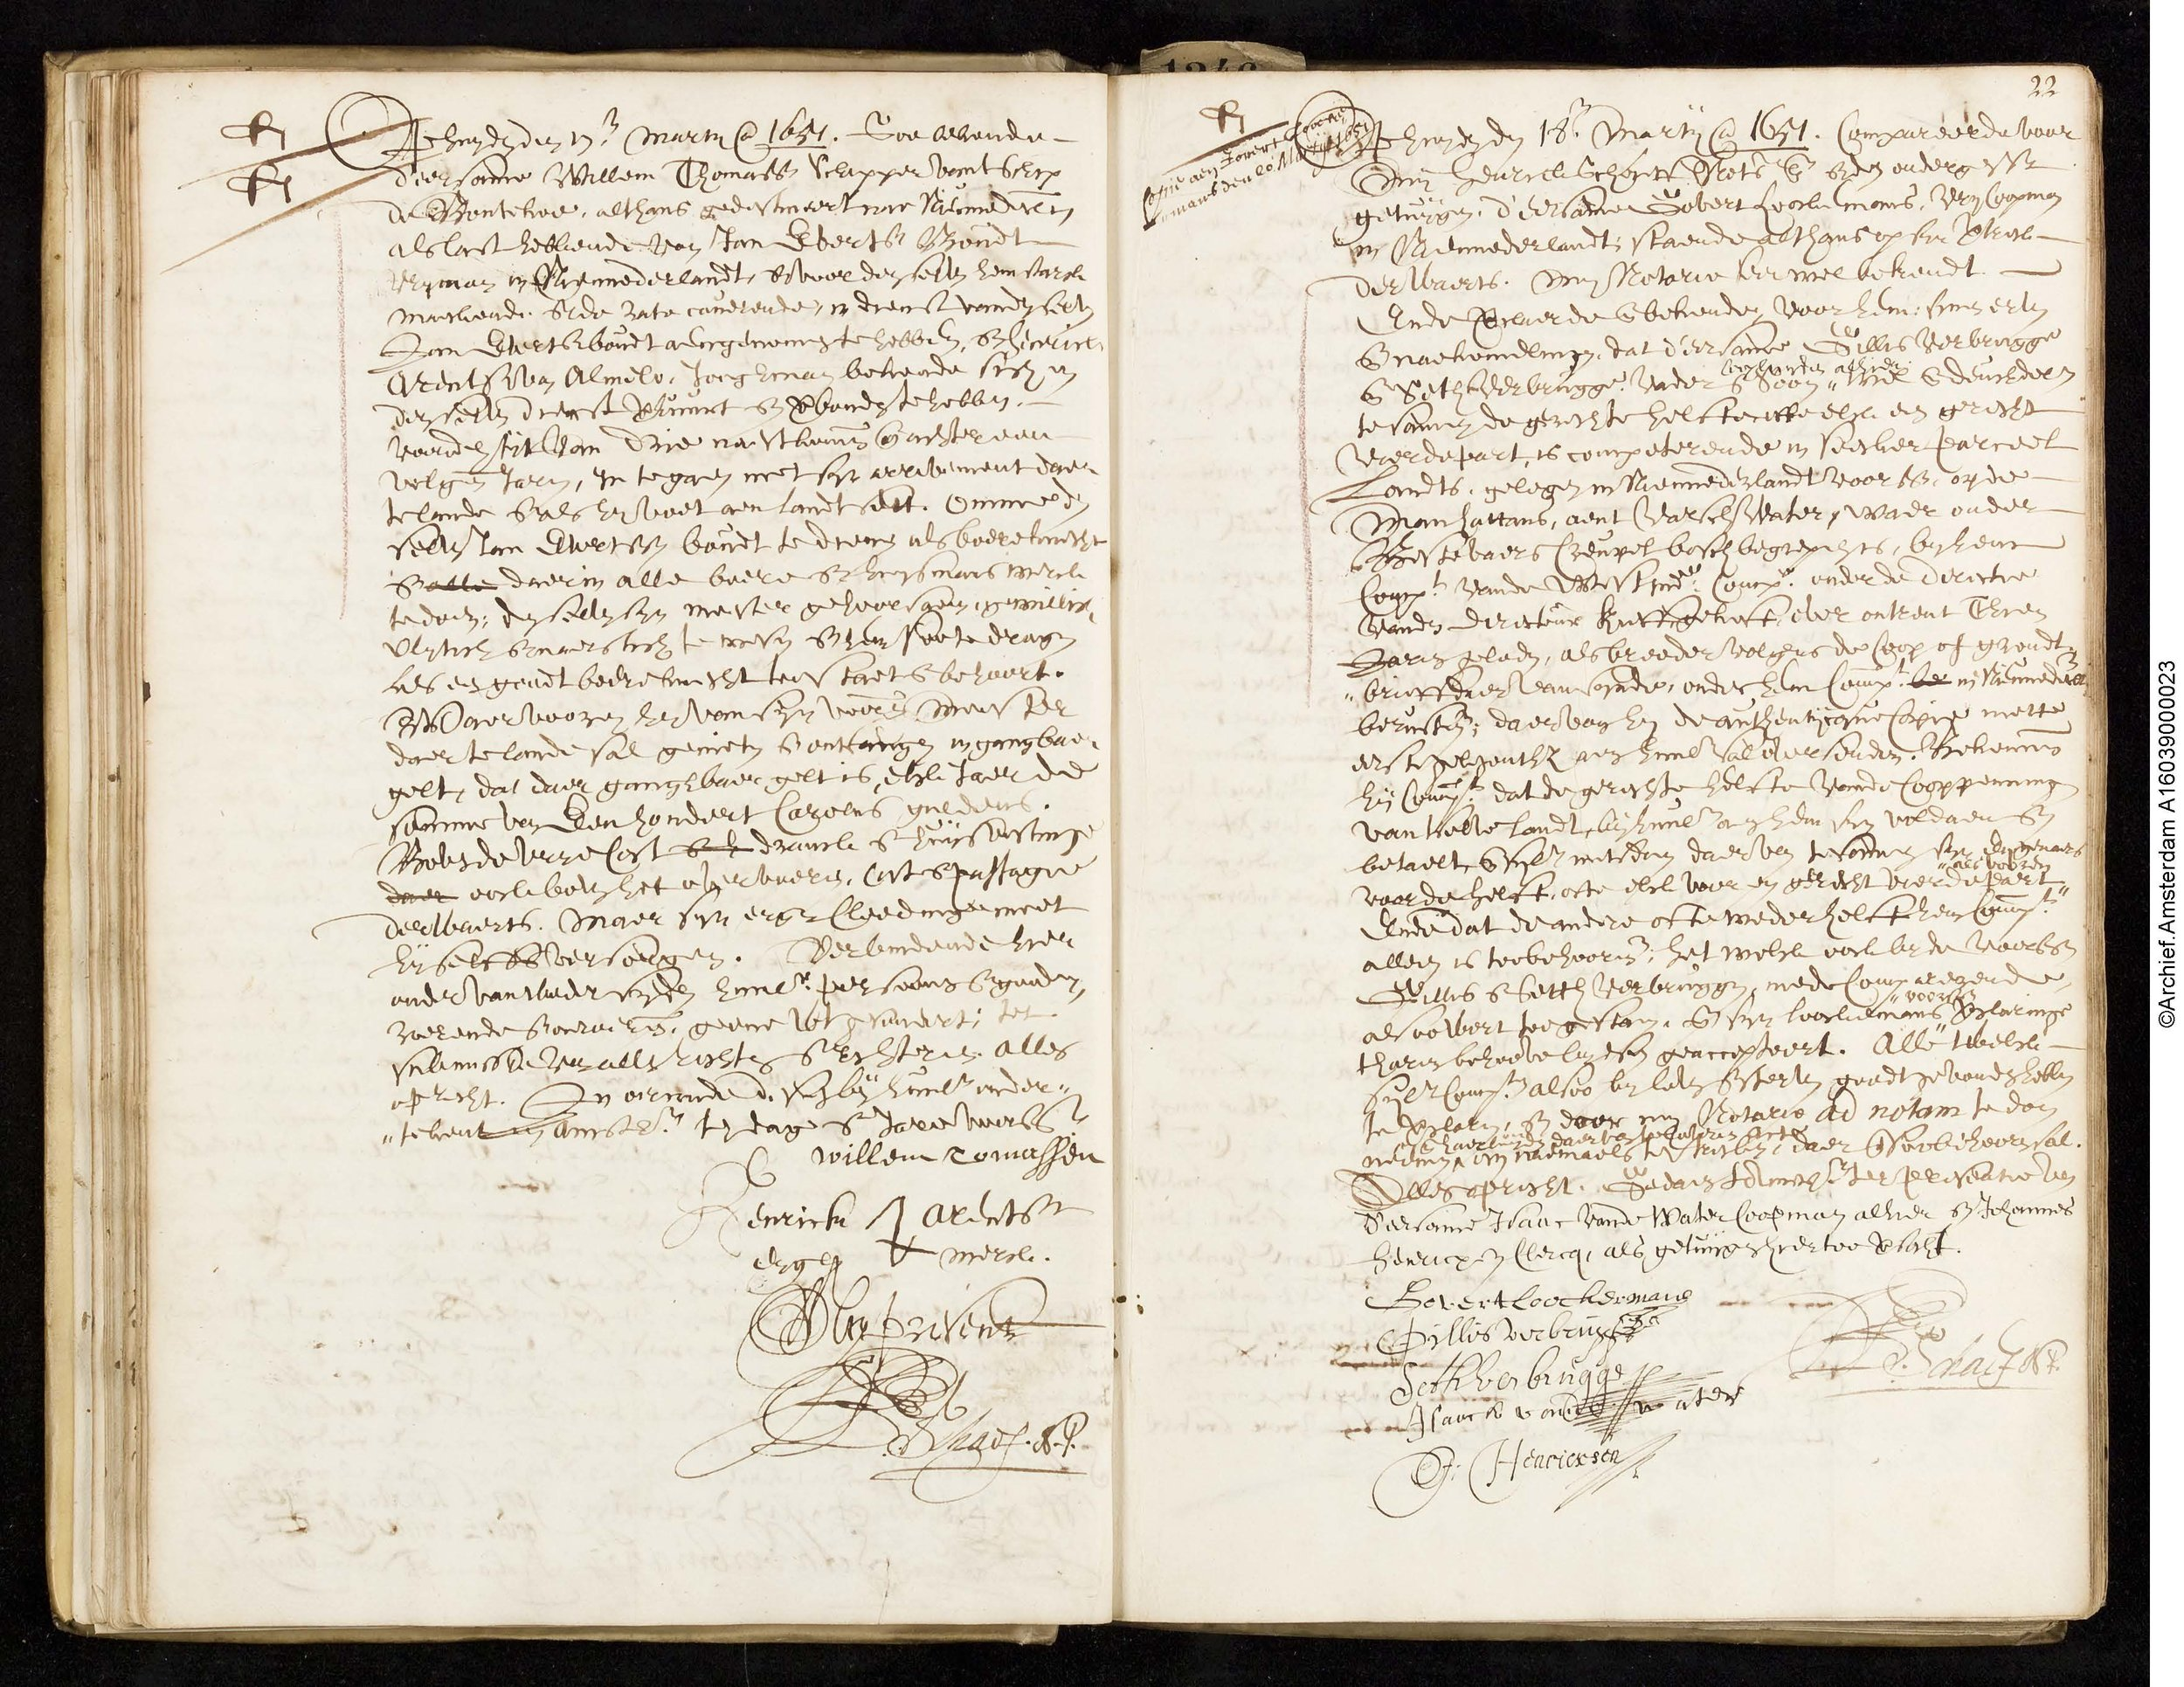 Deposition of Govert Loockermans (1651) - Read an English translation of the deposition Loockermans made regarding the sale of his land in Manhattan.